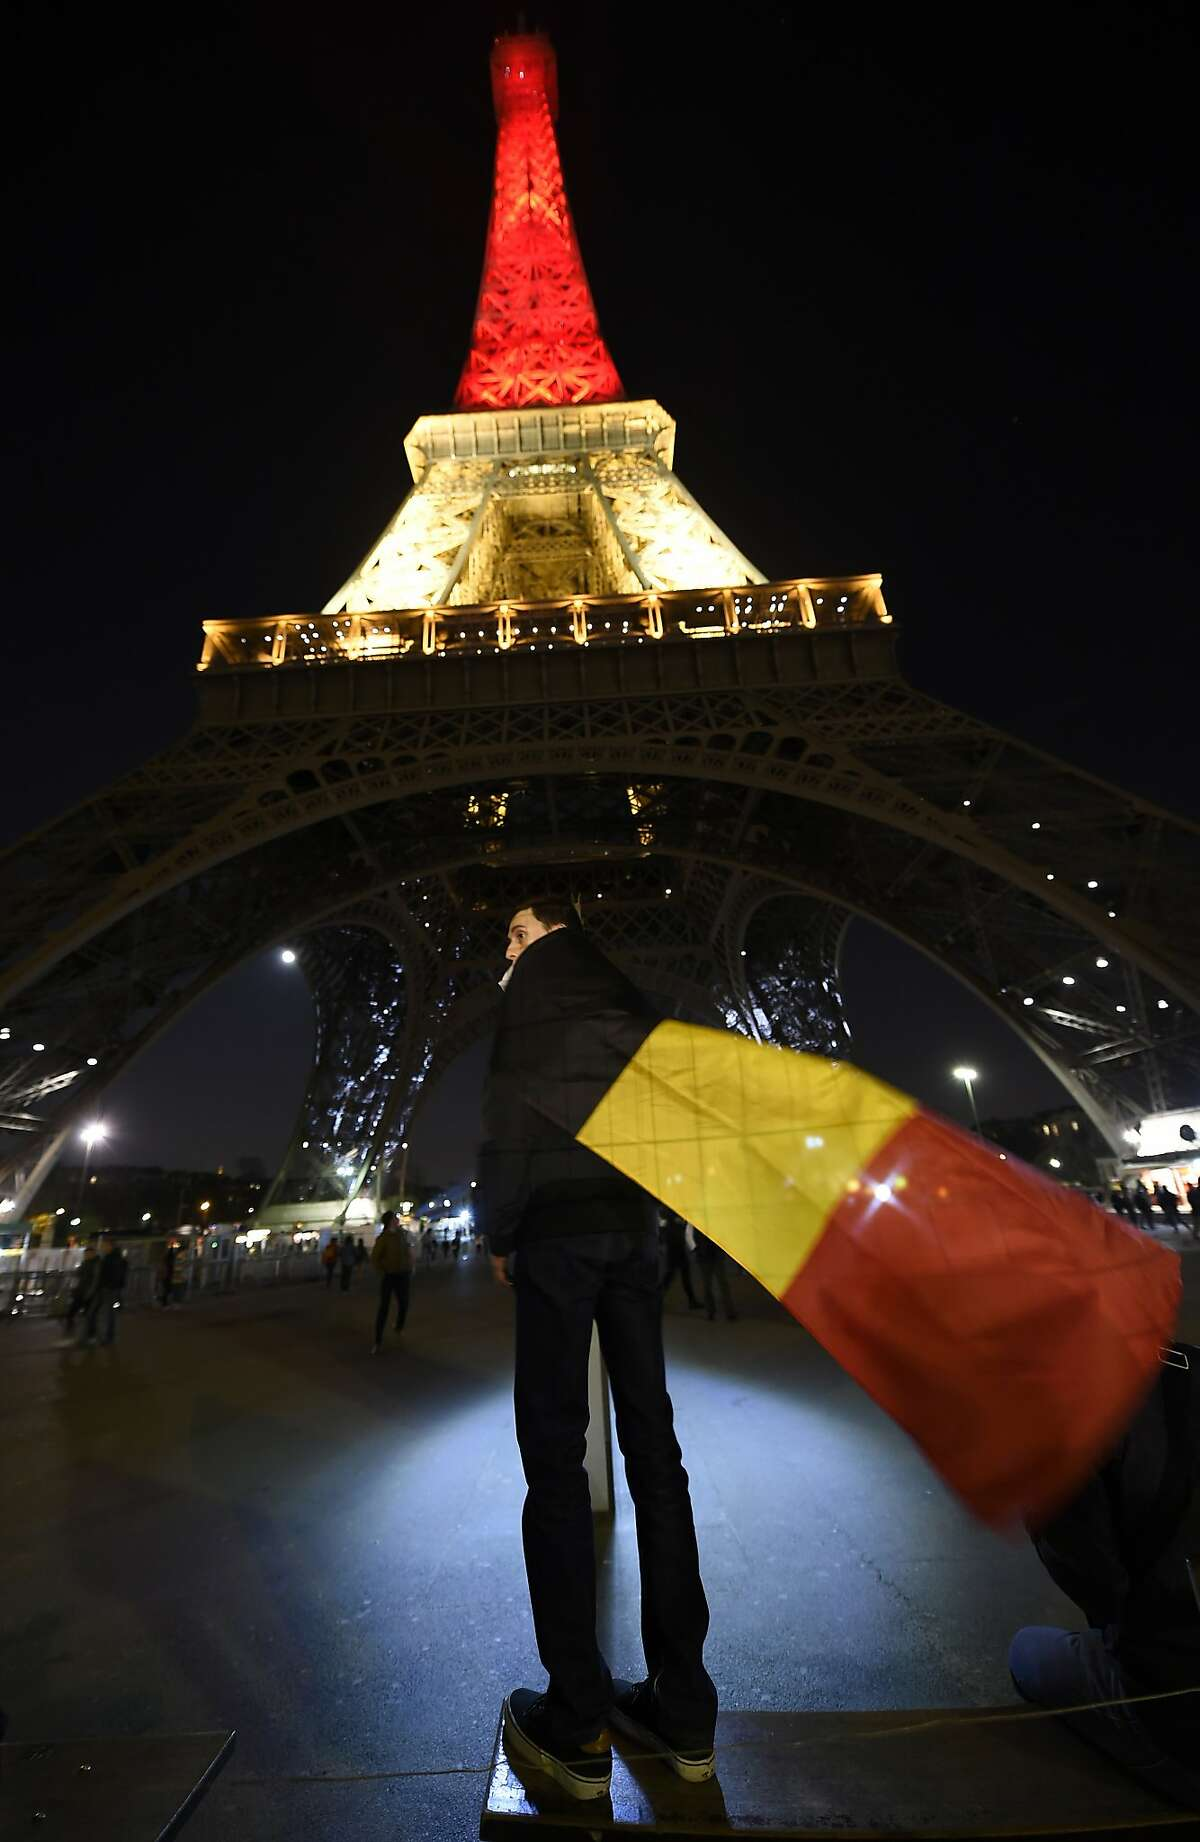 A boy wearing a Belgian flag stands under the Eiffel Tower in Paris illuminated in colours of the Belgian flag.